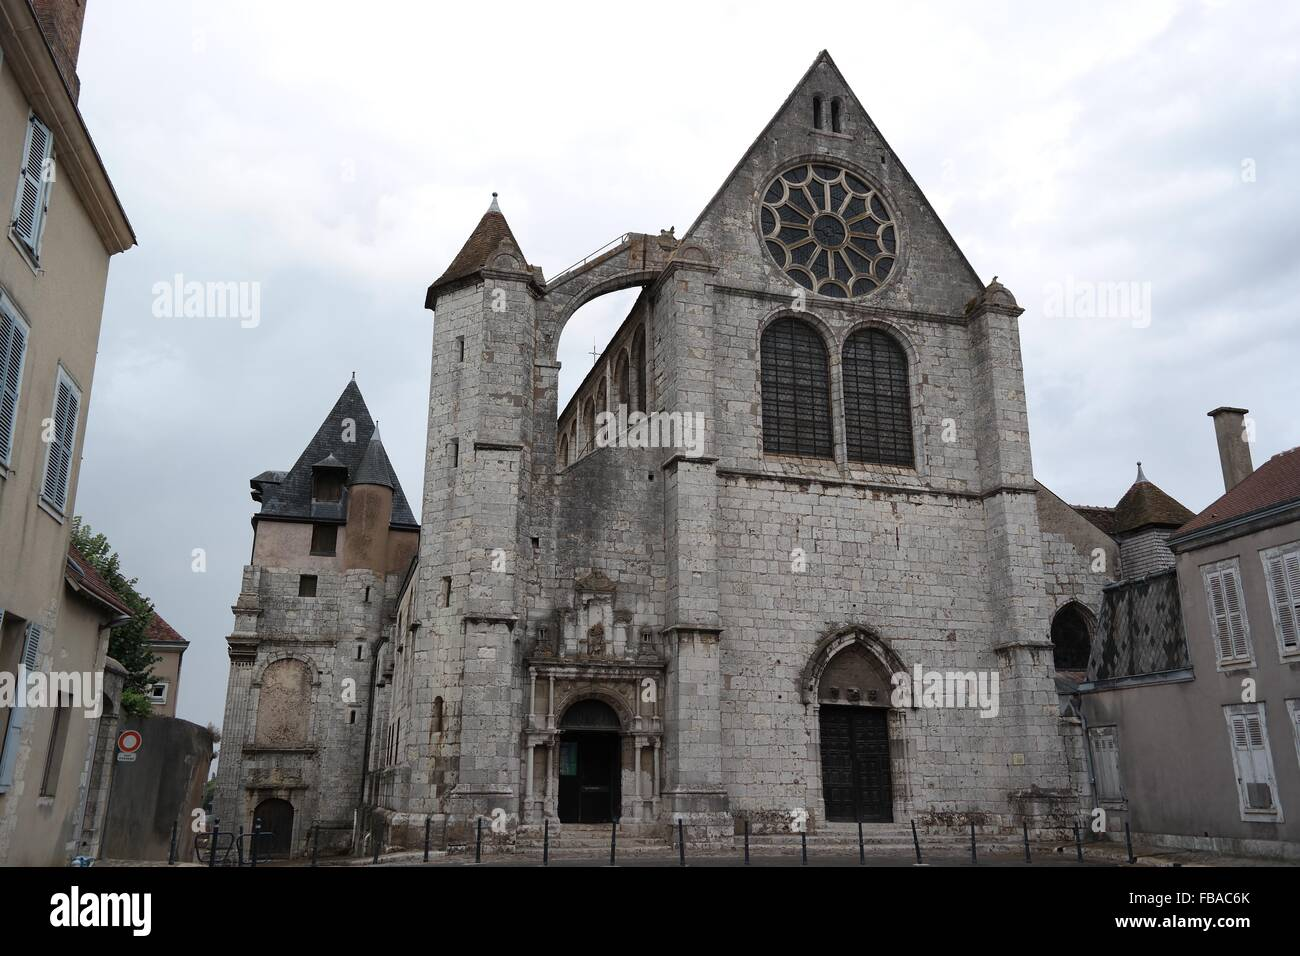 Saint Pierre Church - église St Pierre, Chartres - Stock Image